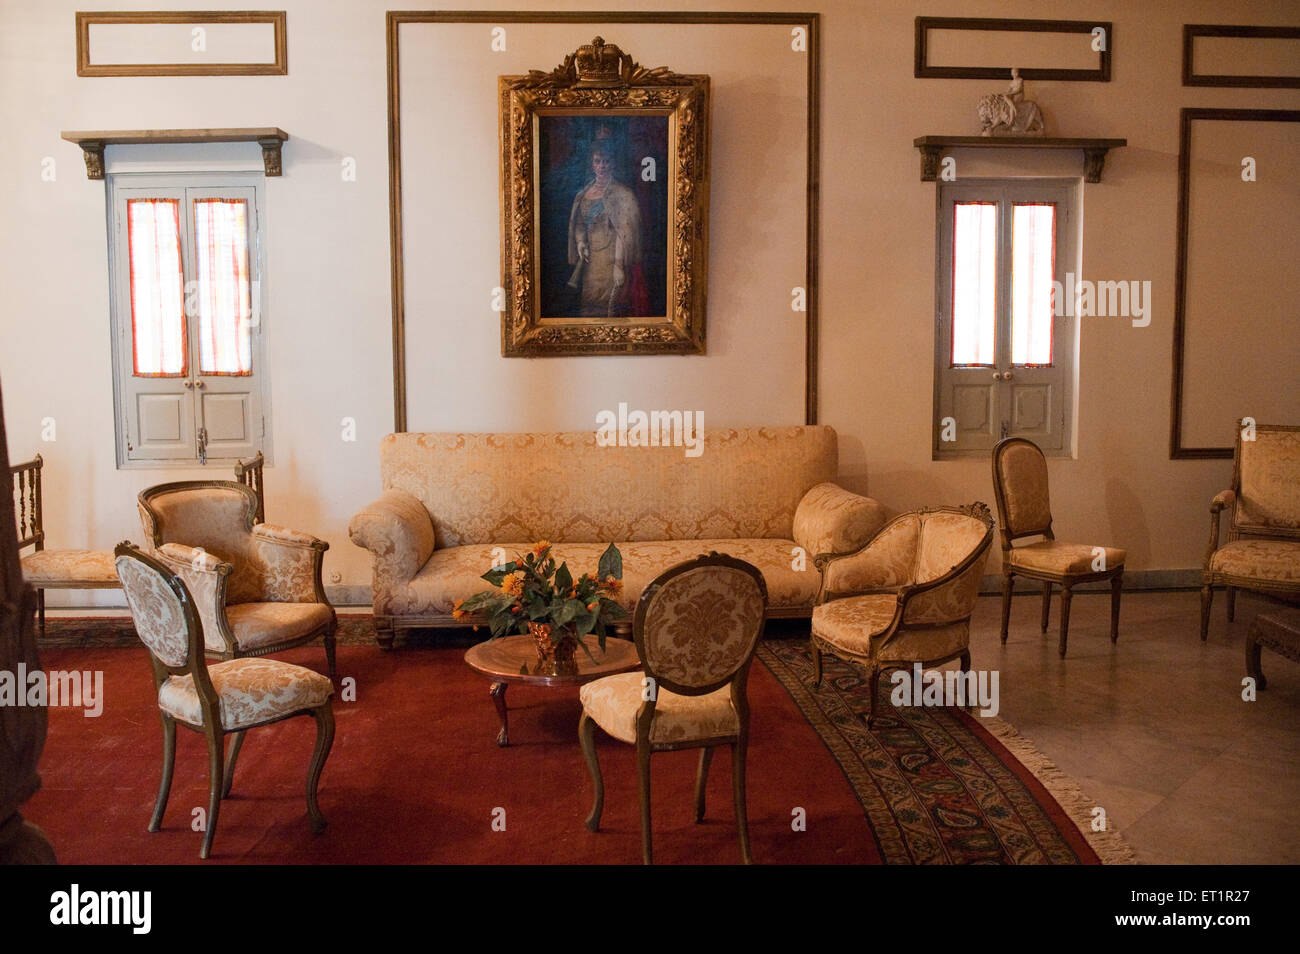 Drawing room in scindia museum in jaivilas palace ; Gwalior ; Madhya Pradesh ; India - Stock Image